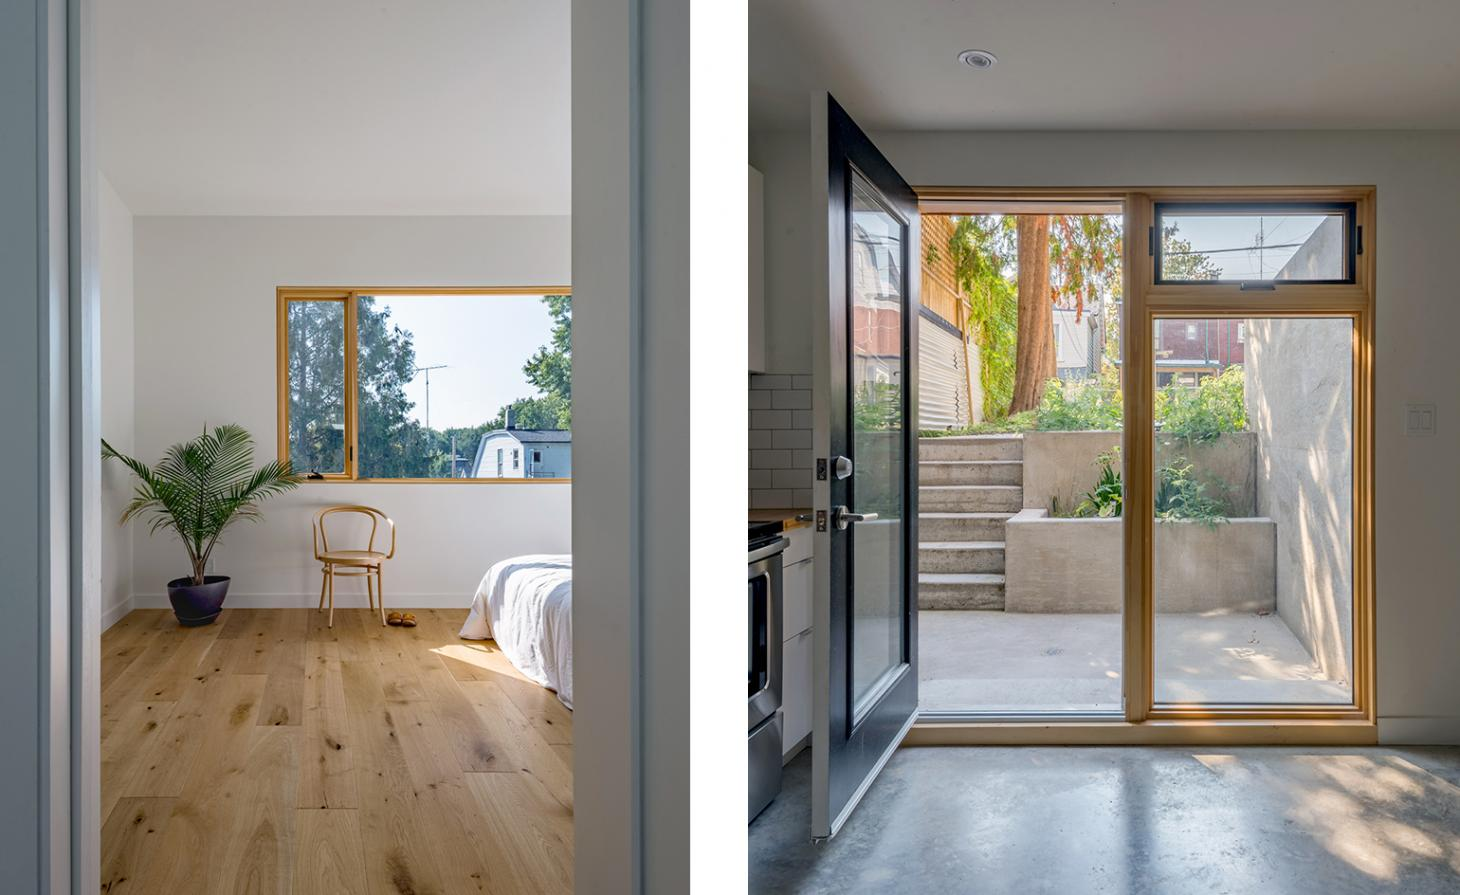 minimalist bedroom and view out to the garden in Toronto townhouse with bright yellow front porch